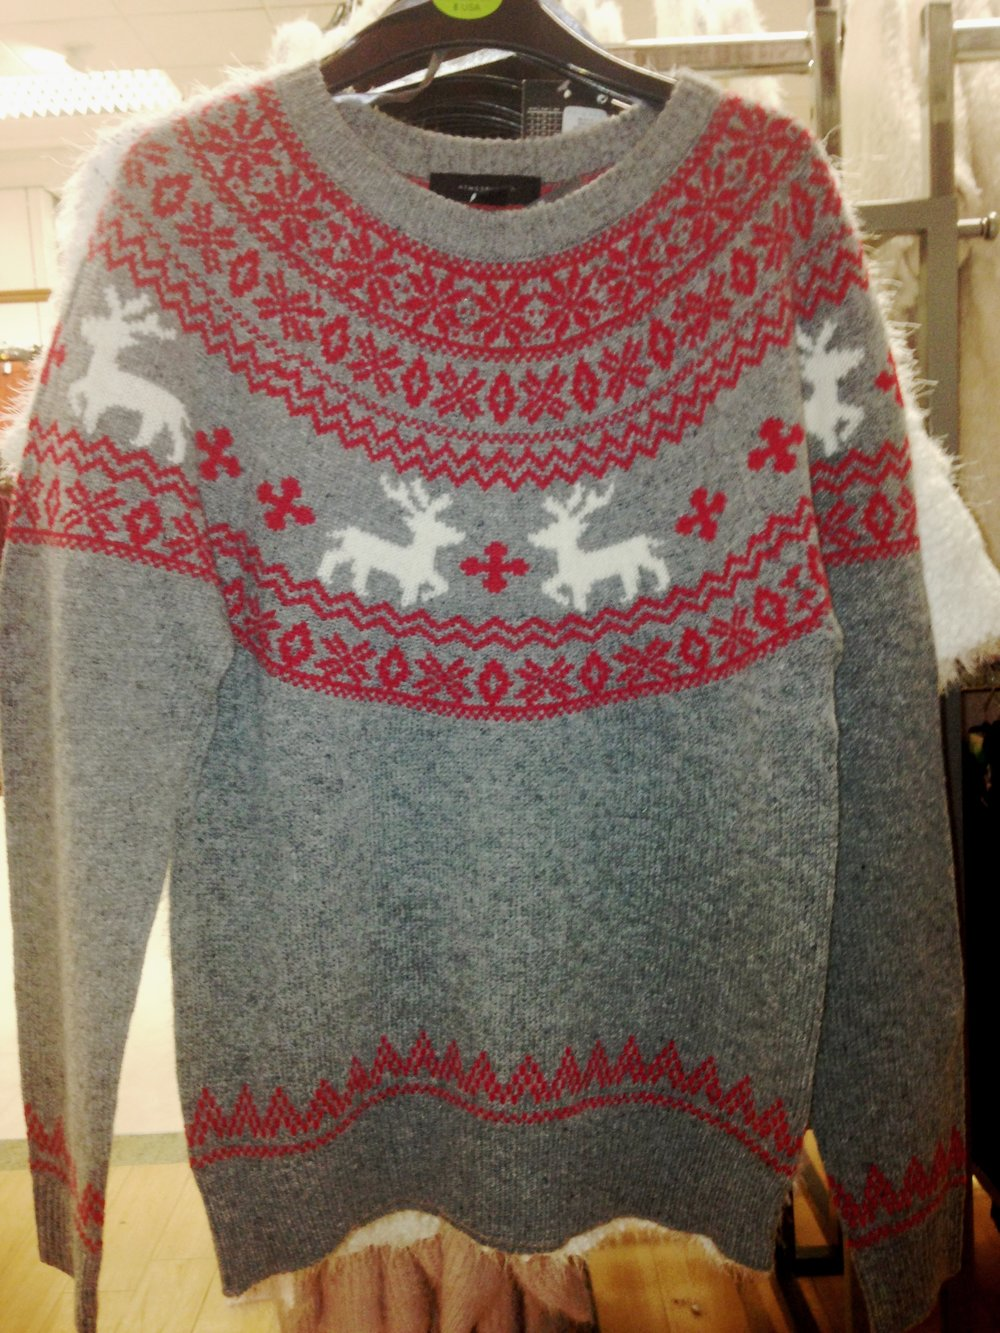 The 3rd style in the 100% wool range from Penneys. €18.00. Love these sweaters. BEST BUY!